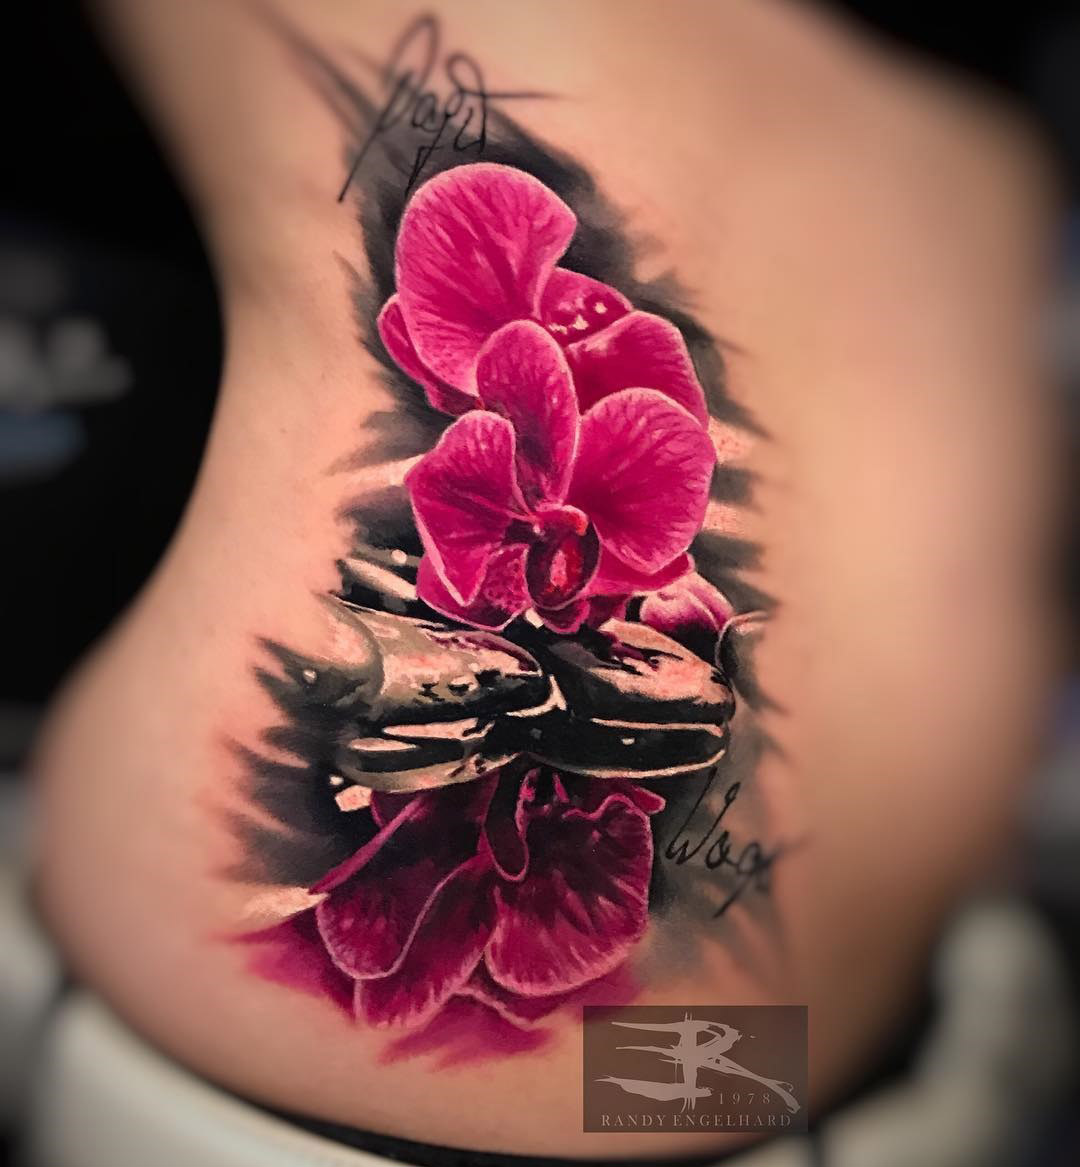 Pink Orchids Tattoo, girl's side